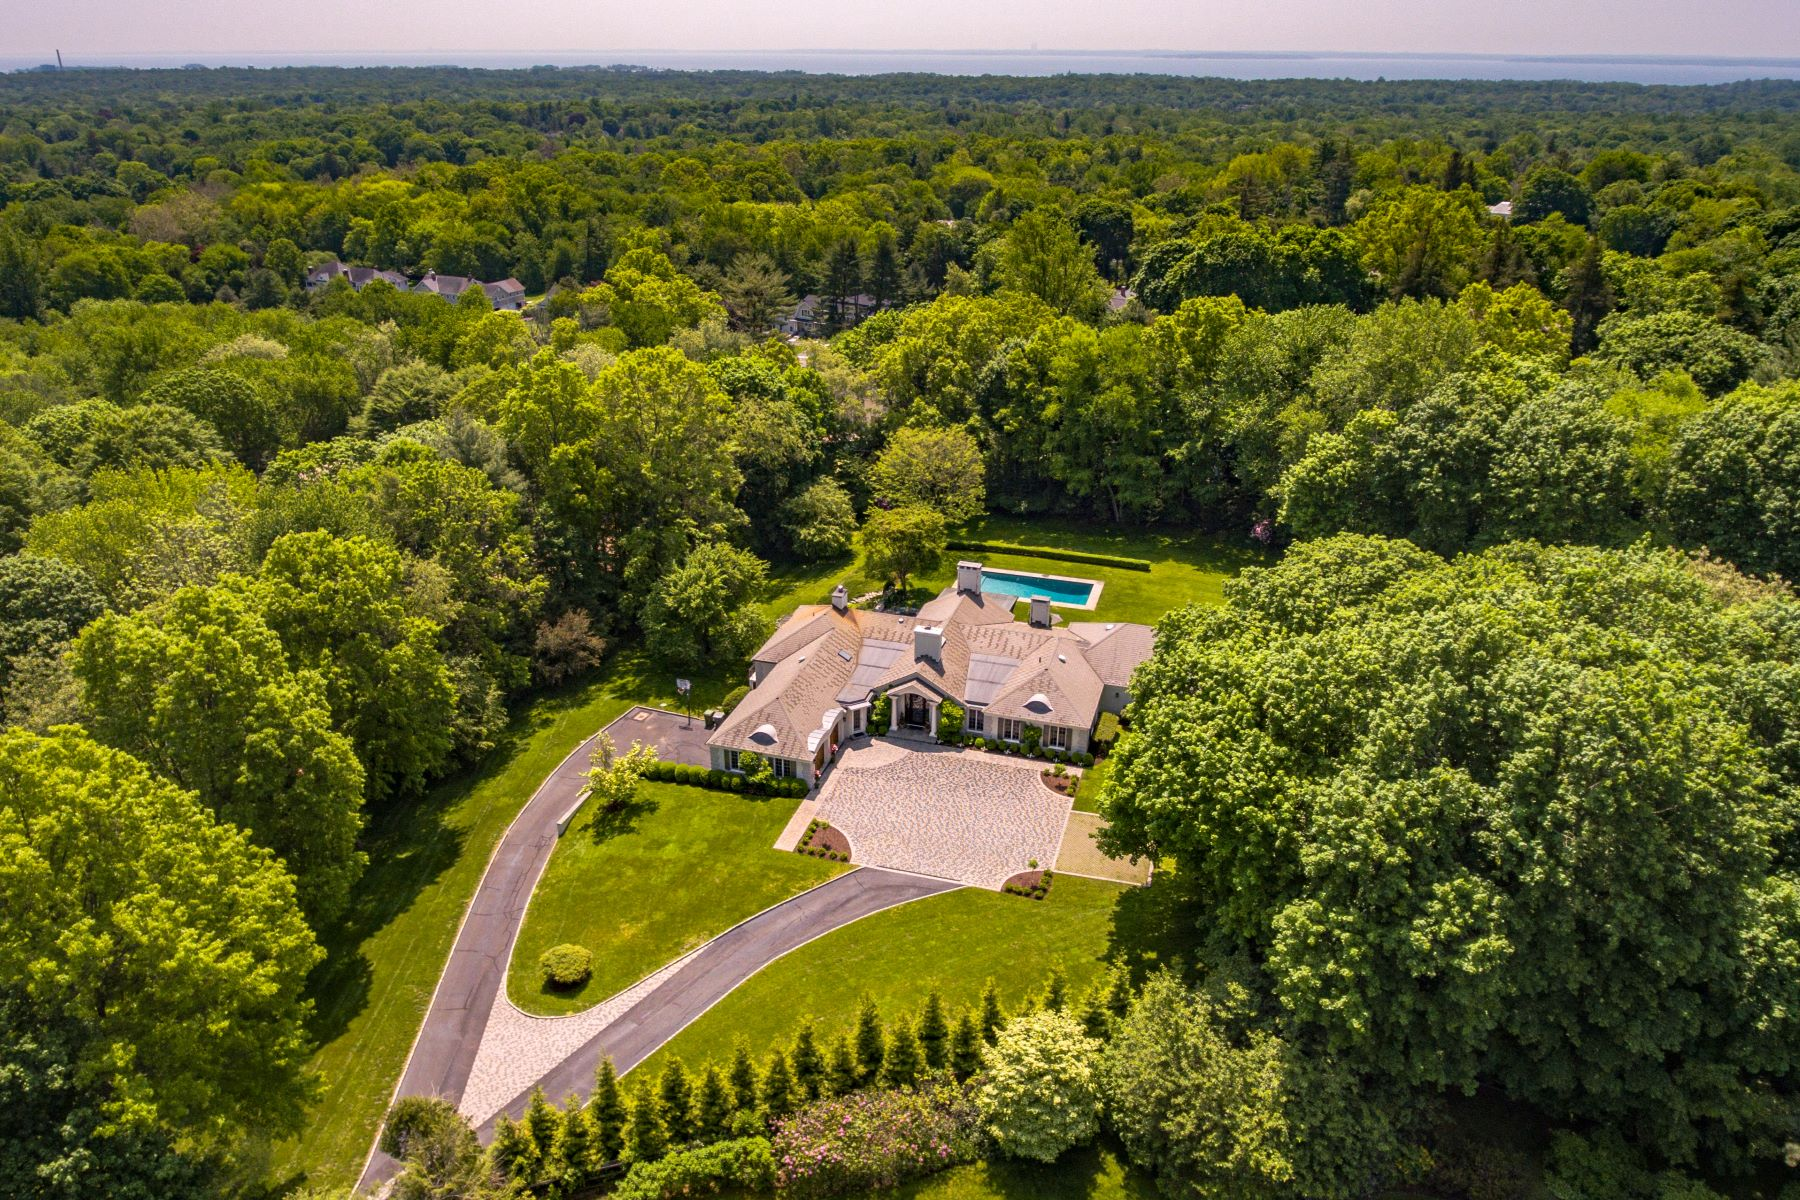 Casa Unifamiliar por un Venta en Magnificent, Very Private Property and Sited On Highest Point In Darien 72 Peach Hill Road Darien, Connecticut 06820 Estados Unidos